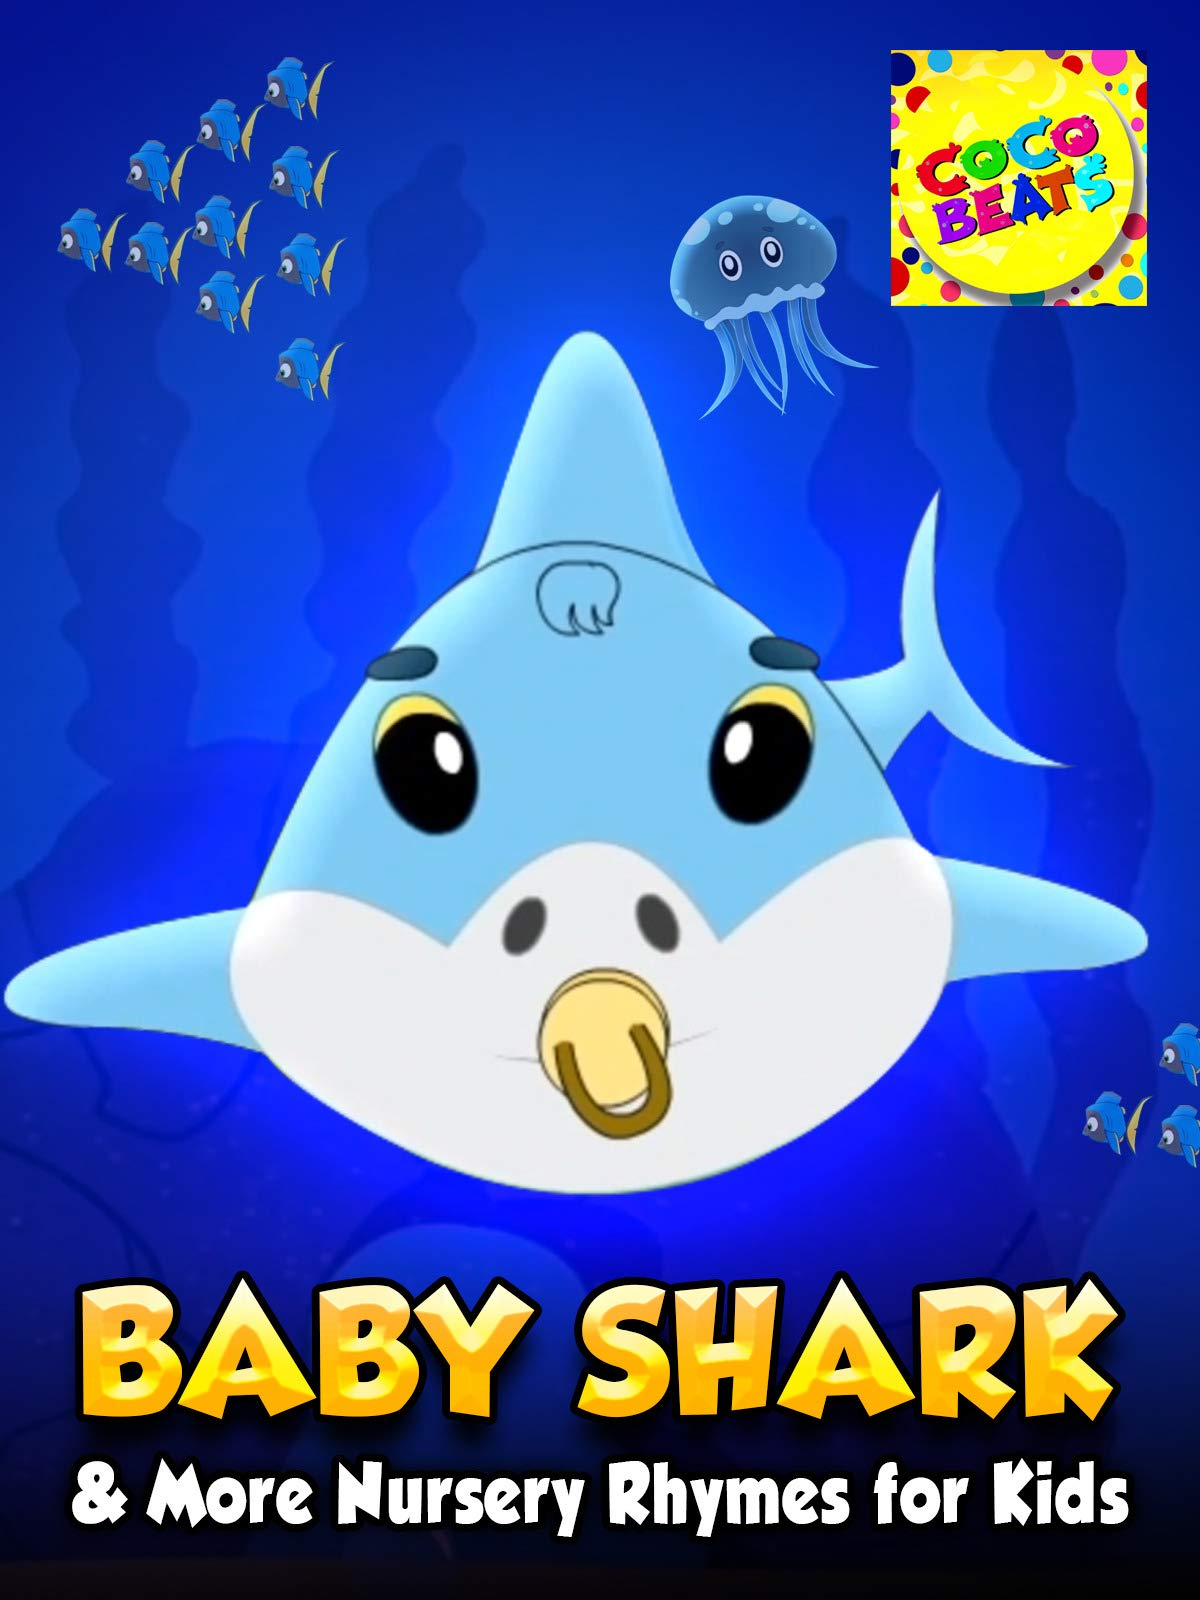 Baby Shark & More Nursery Rhymes for Kids Coco Beats